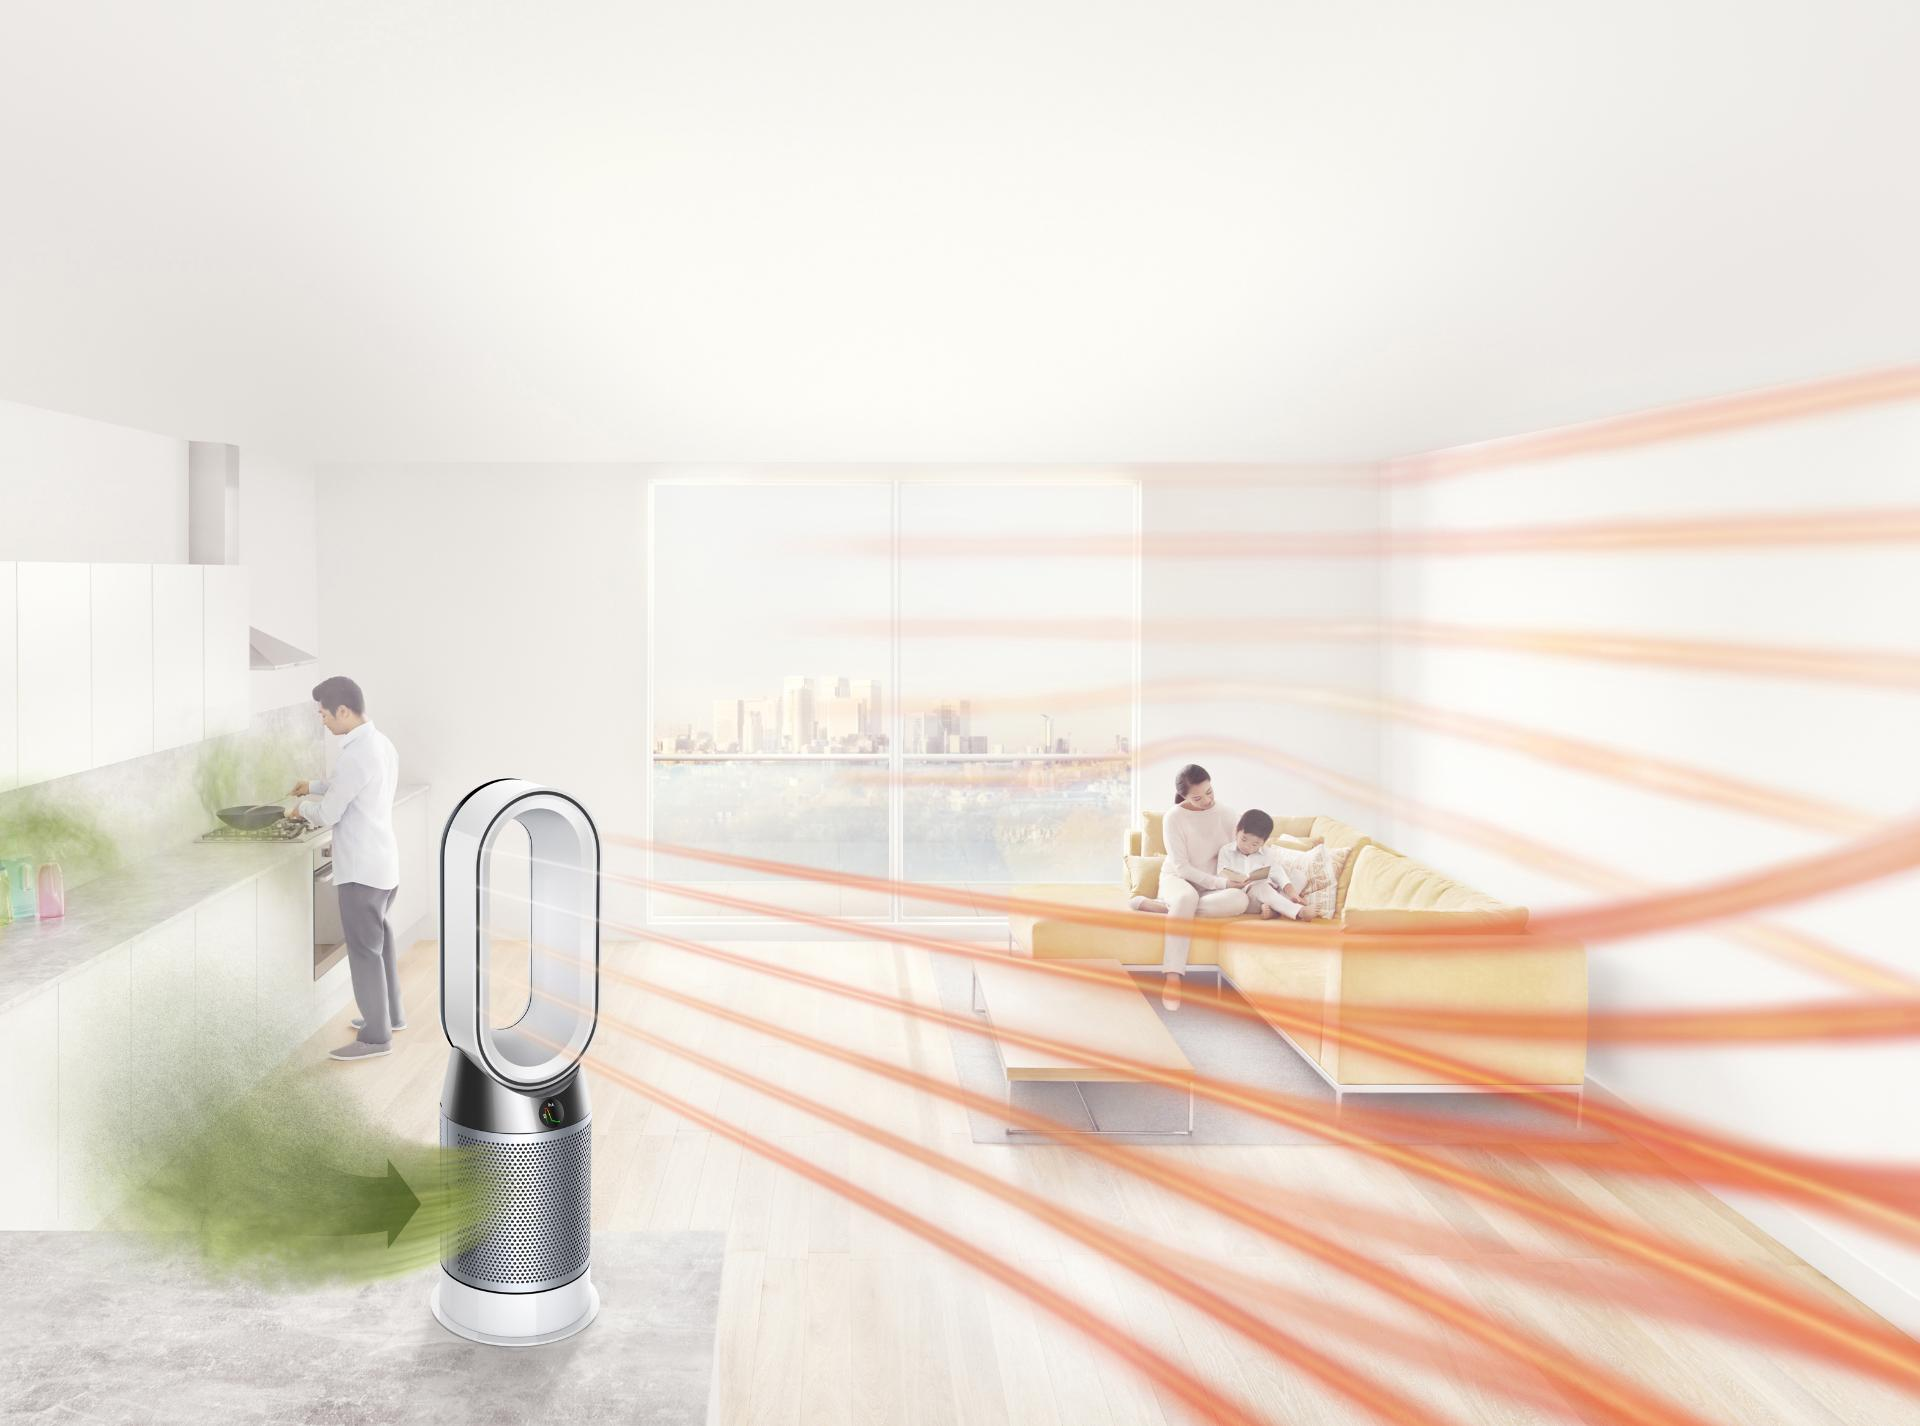 Dyson Pure Hot+Cool purifier being used indoors